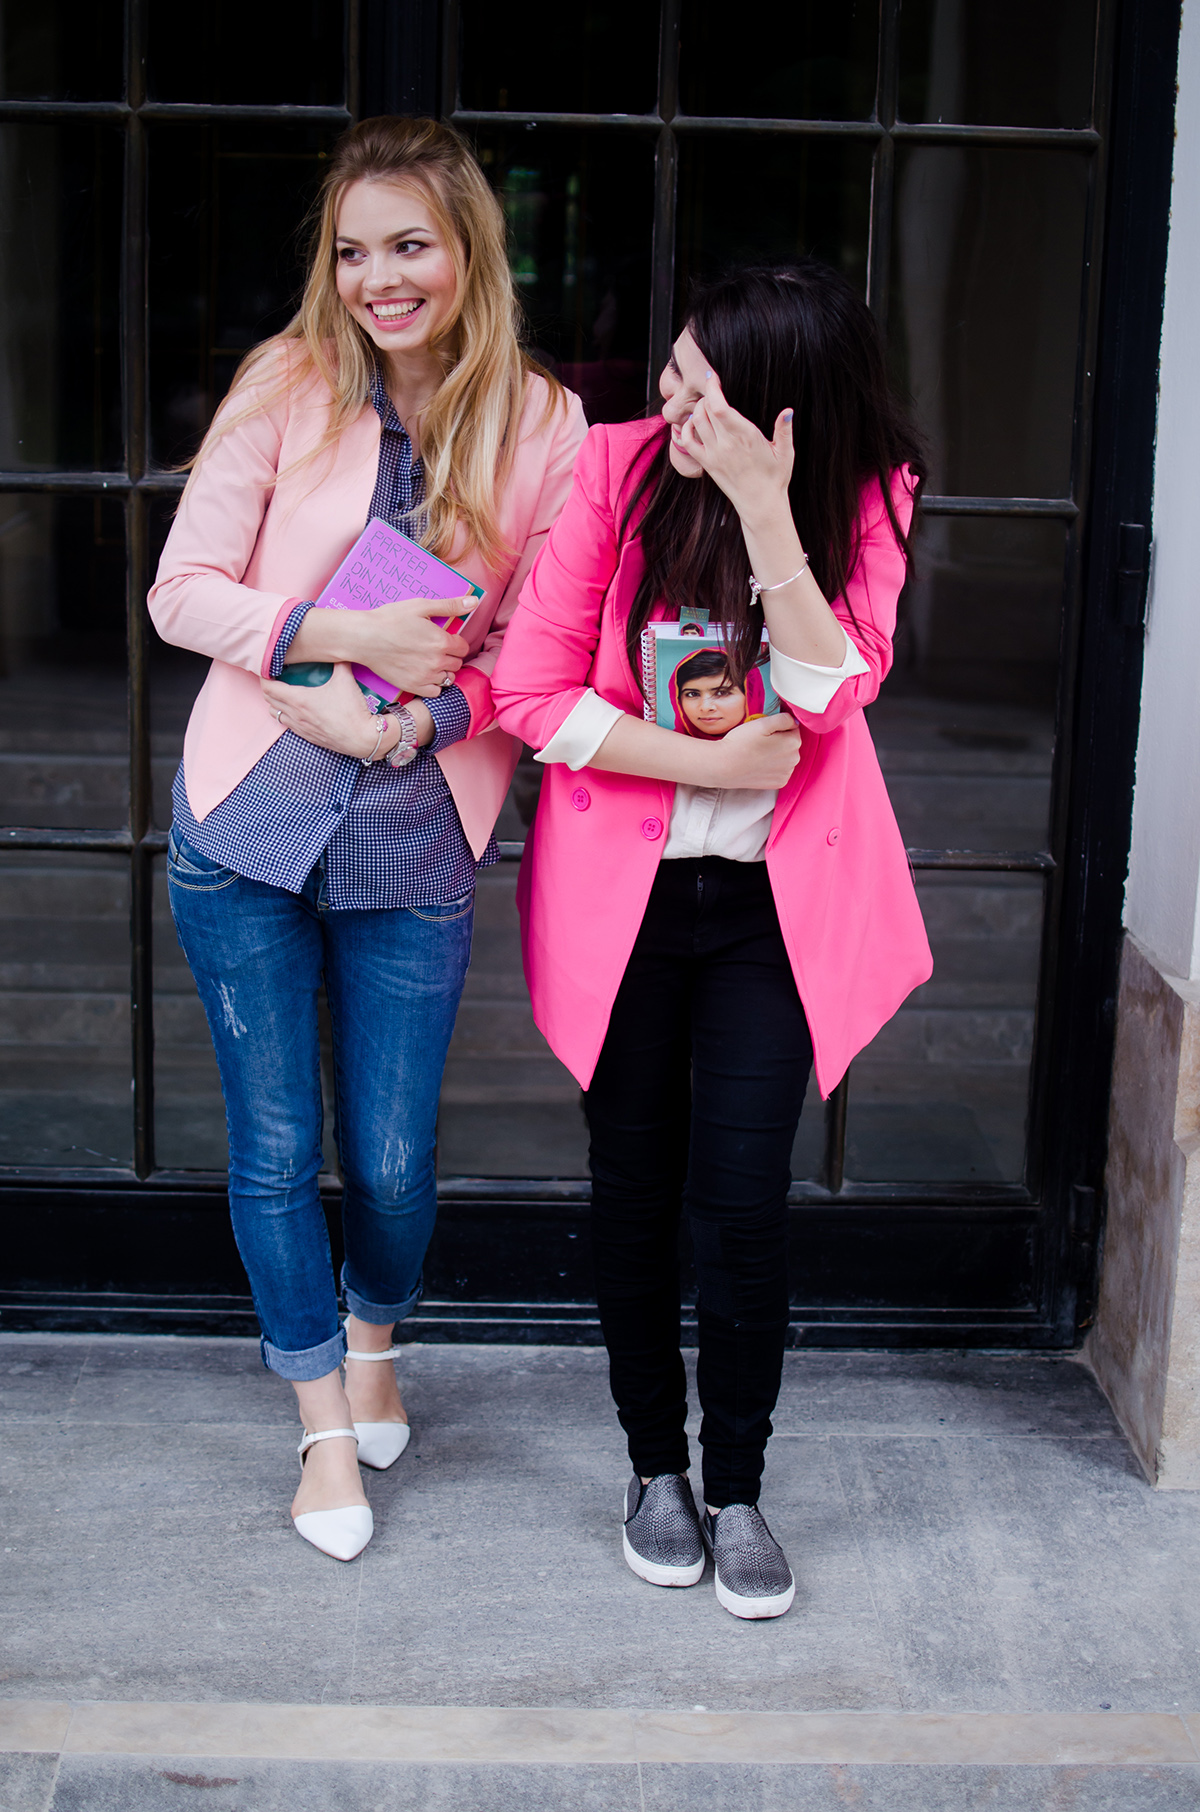 pink-blazer-skinny-jeans-white-pointed-flats-blue-backback-back-to-college (5)